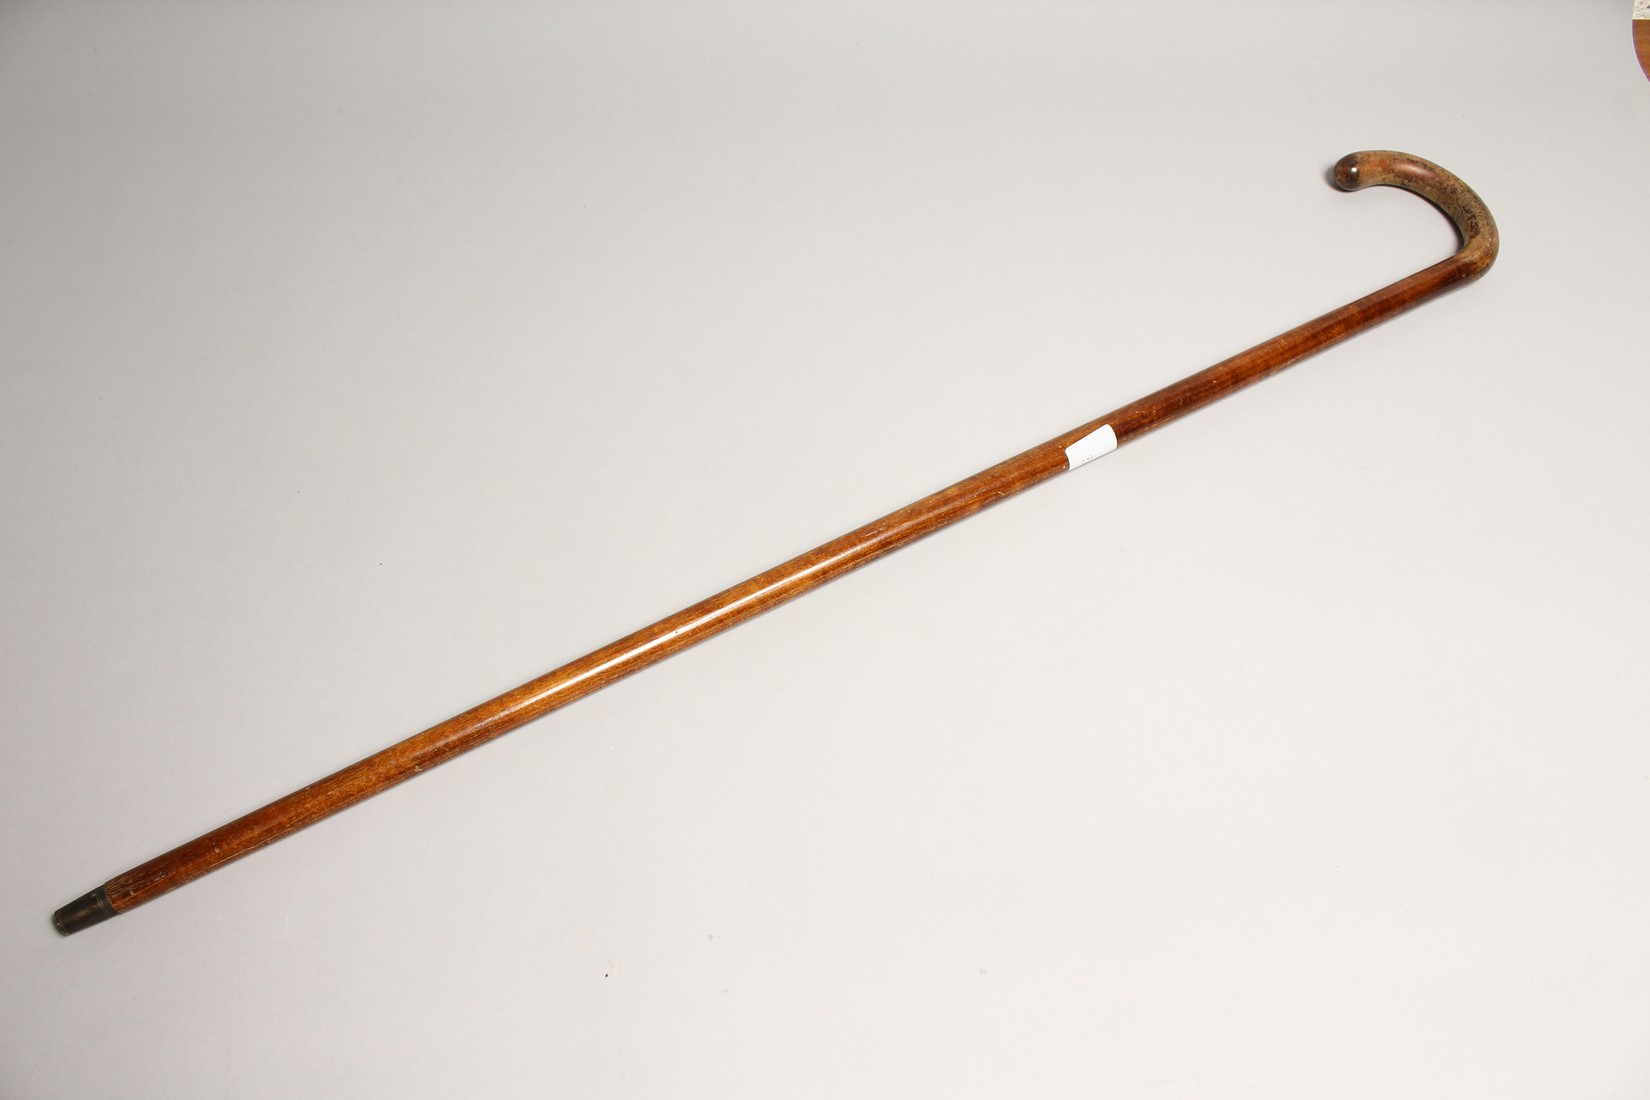 A RUSTIC WALKING CANE 3ft long - Image 3 of 3